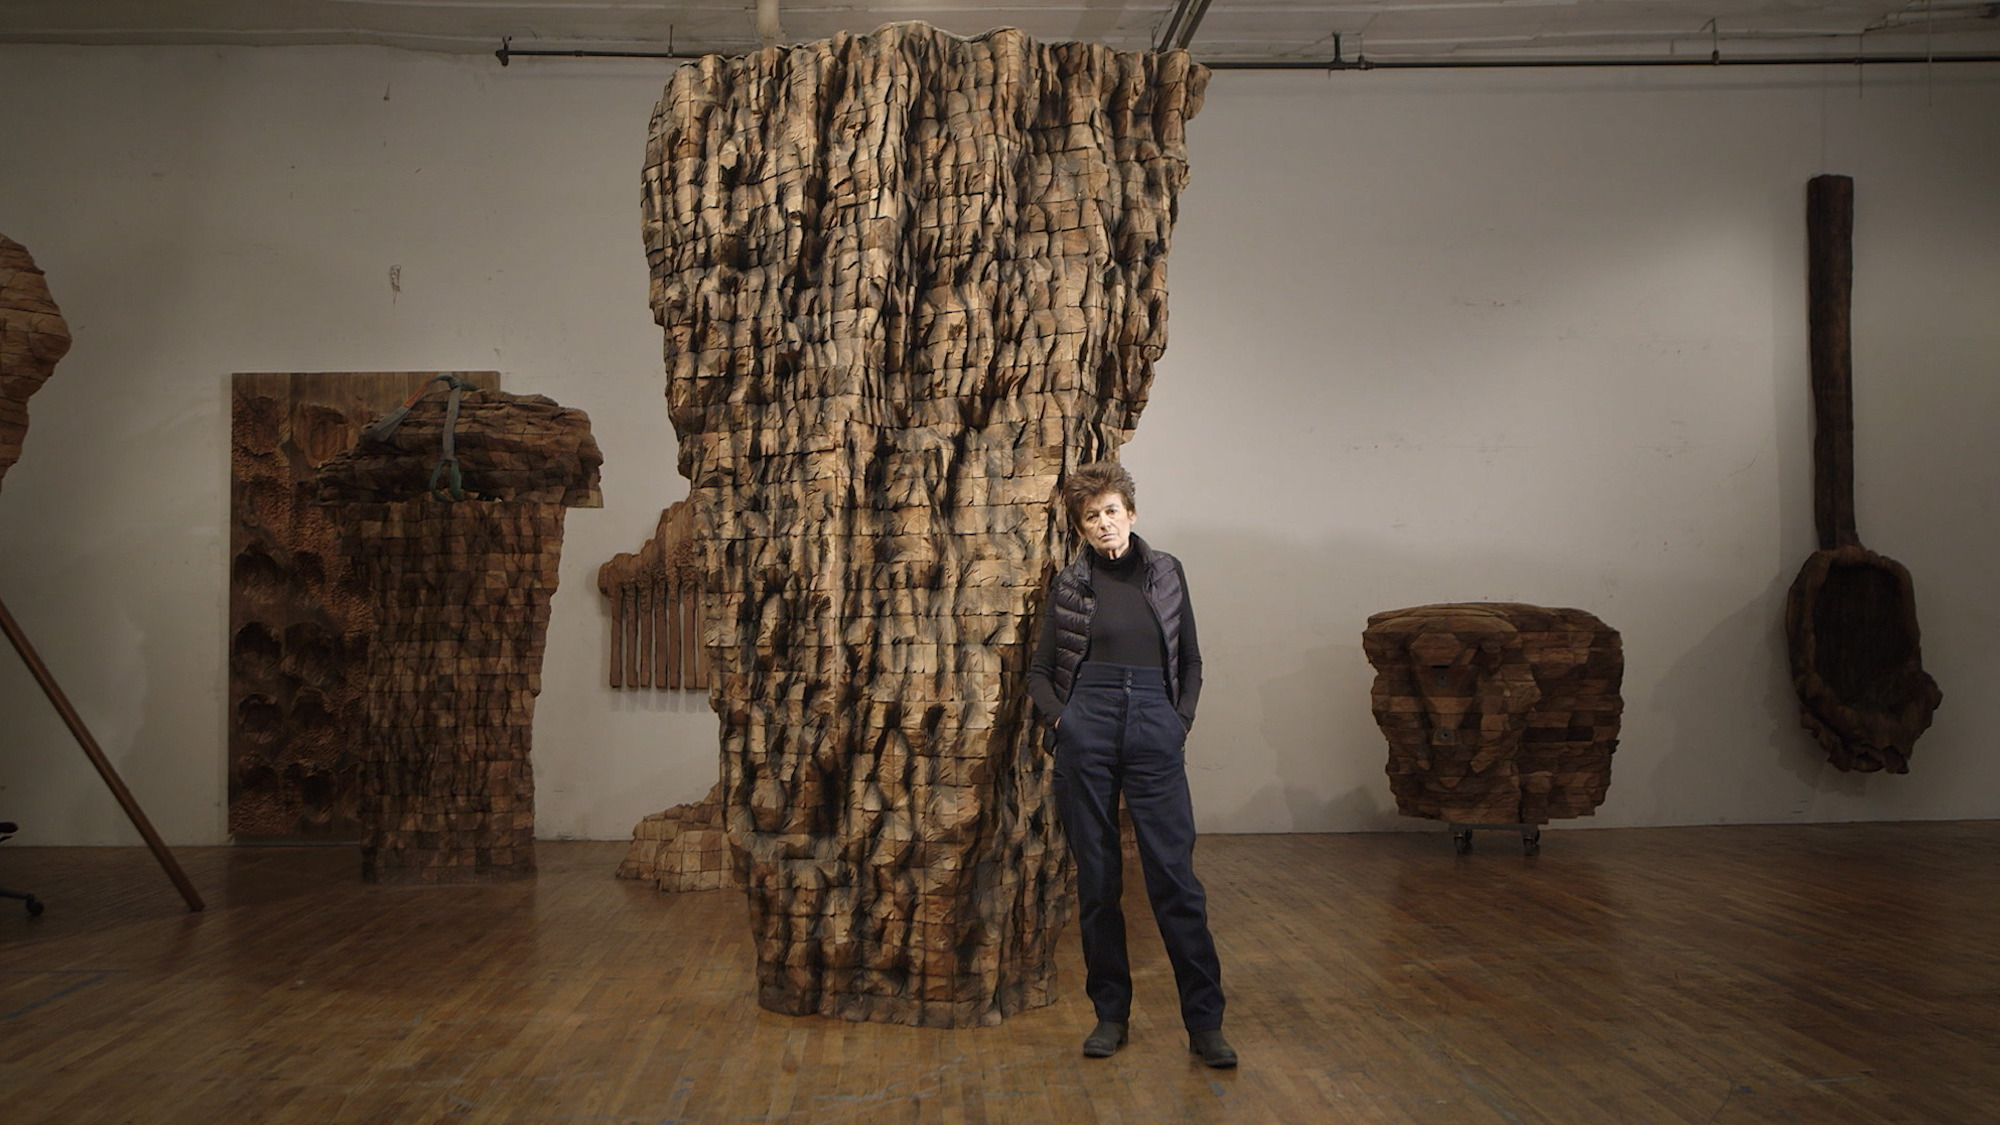 VIFF Presents – Daniel Traub's Ursula Von Rydingsvard: Into Her Own